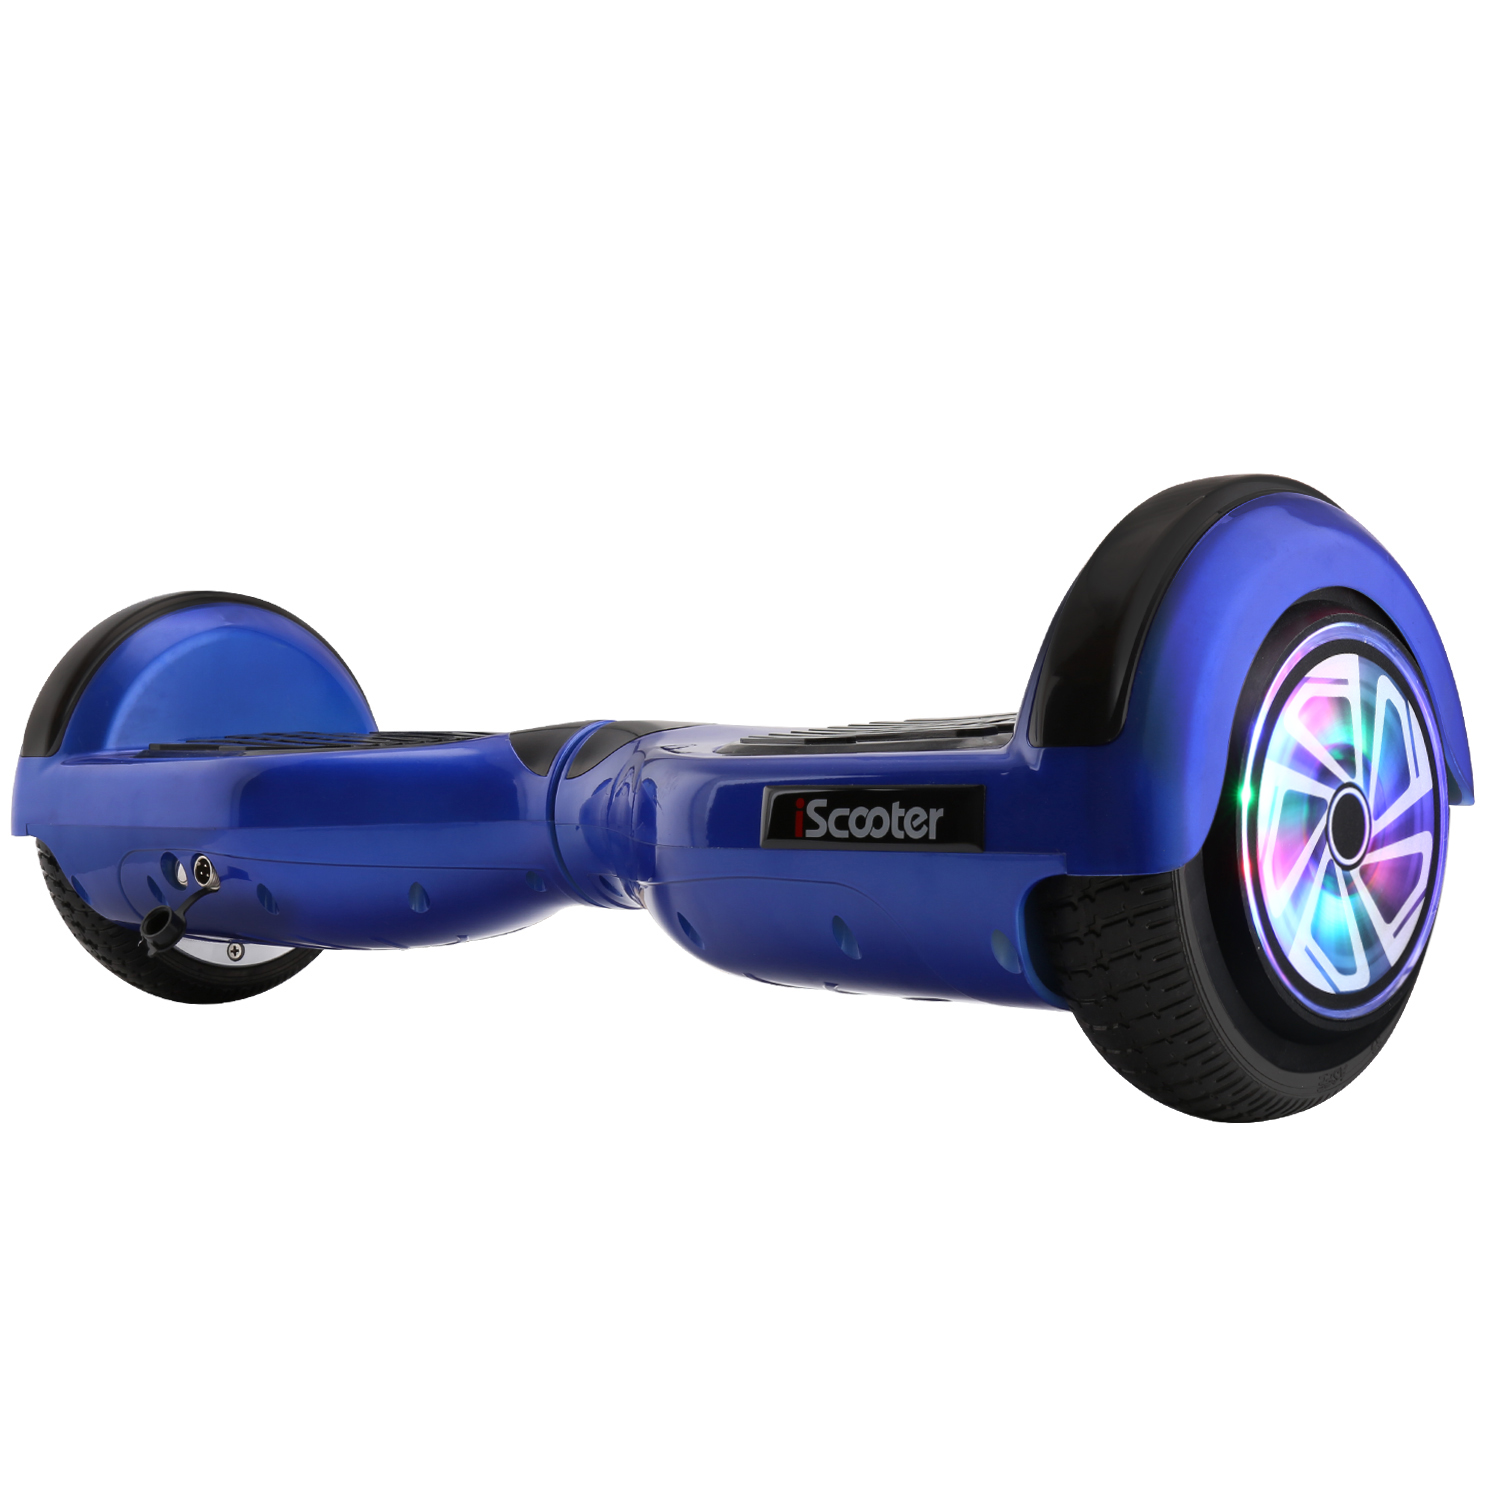 6.5 inch Hoverboard with Illuminated Wheels and Bluetooth 3